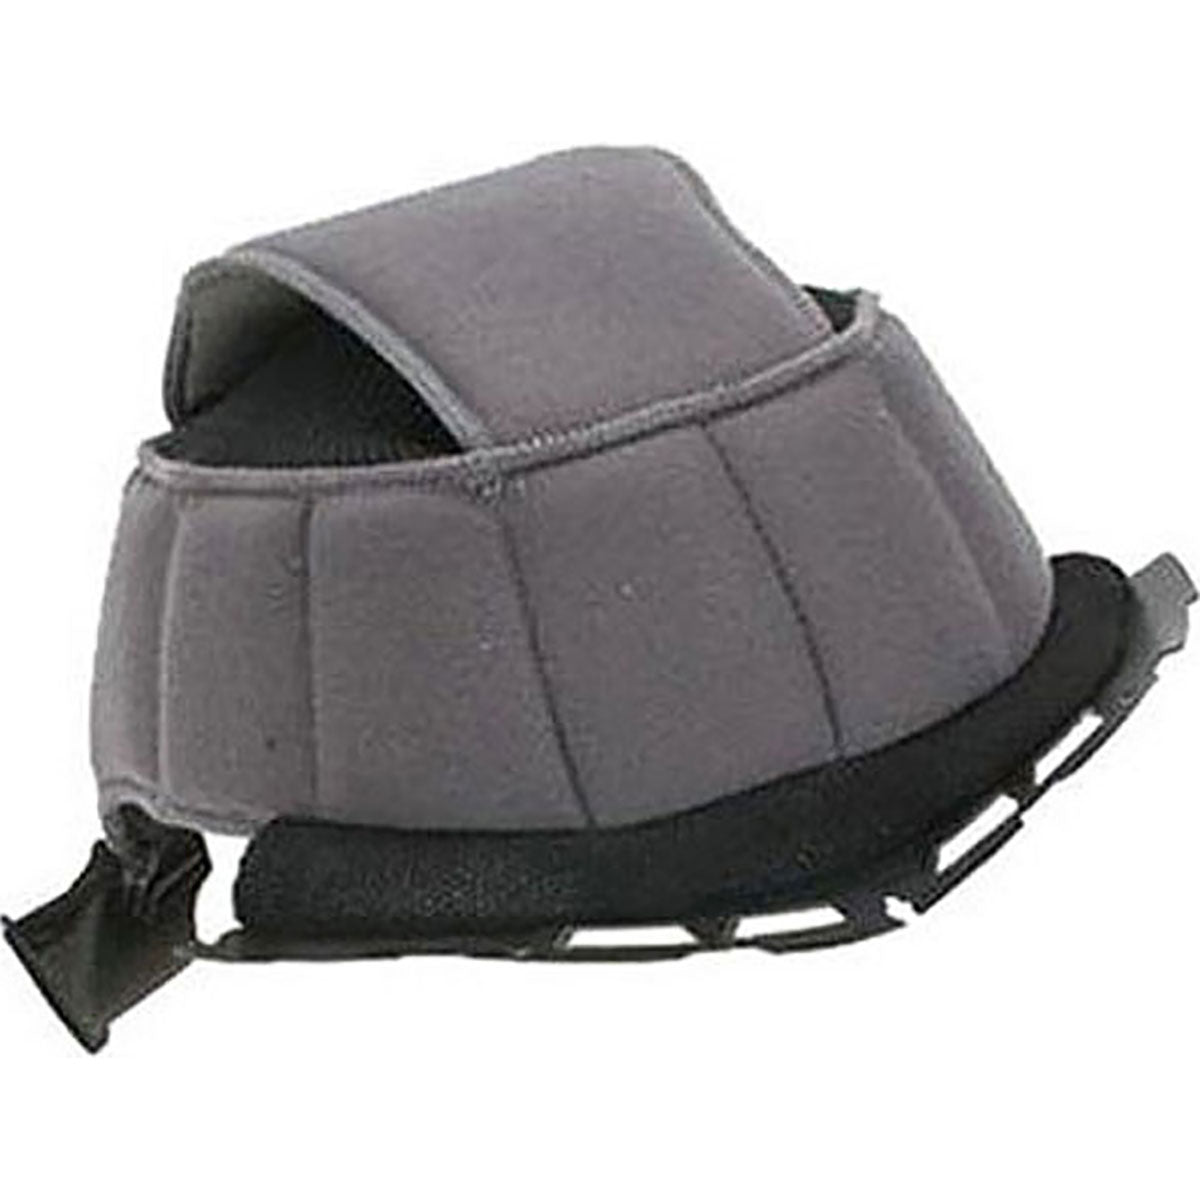 HJC CL-X4Y Liner Youth Helmet Accessories-893